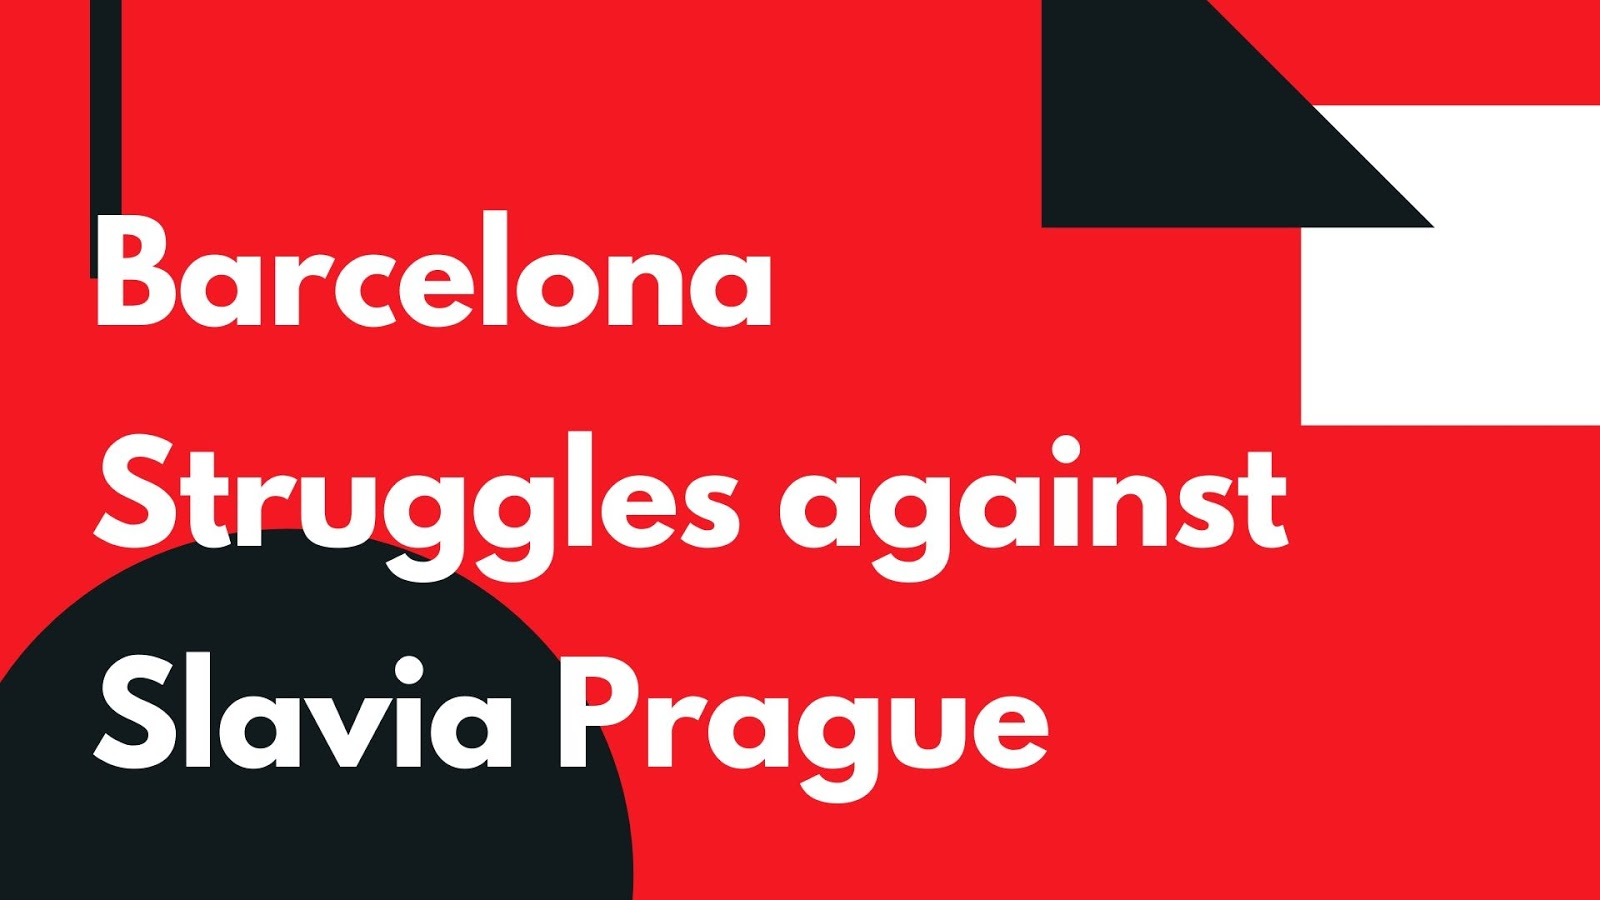 Barcelona Struggles against Slavia Prague at the Camp Nou #Barca #FCBarcelona